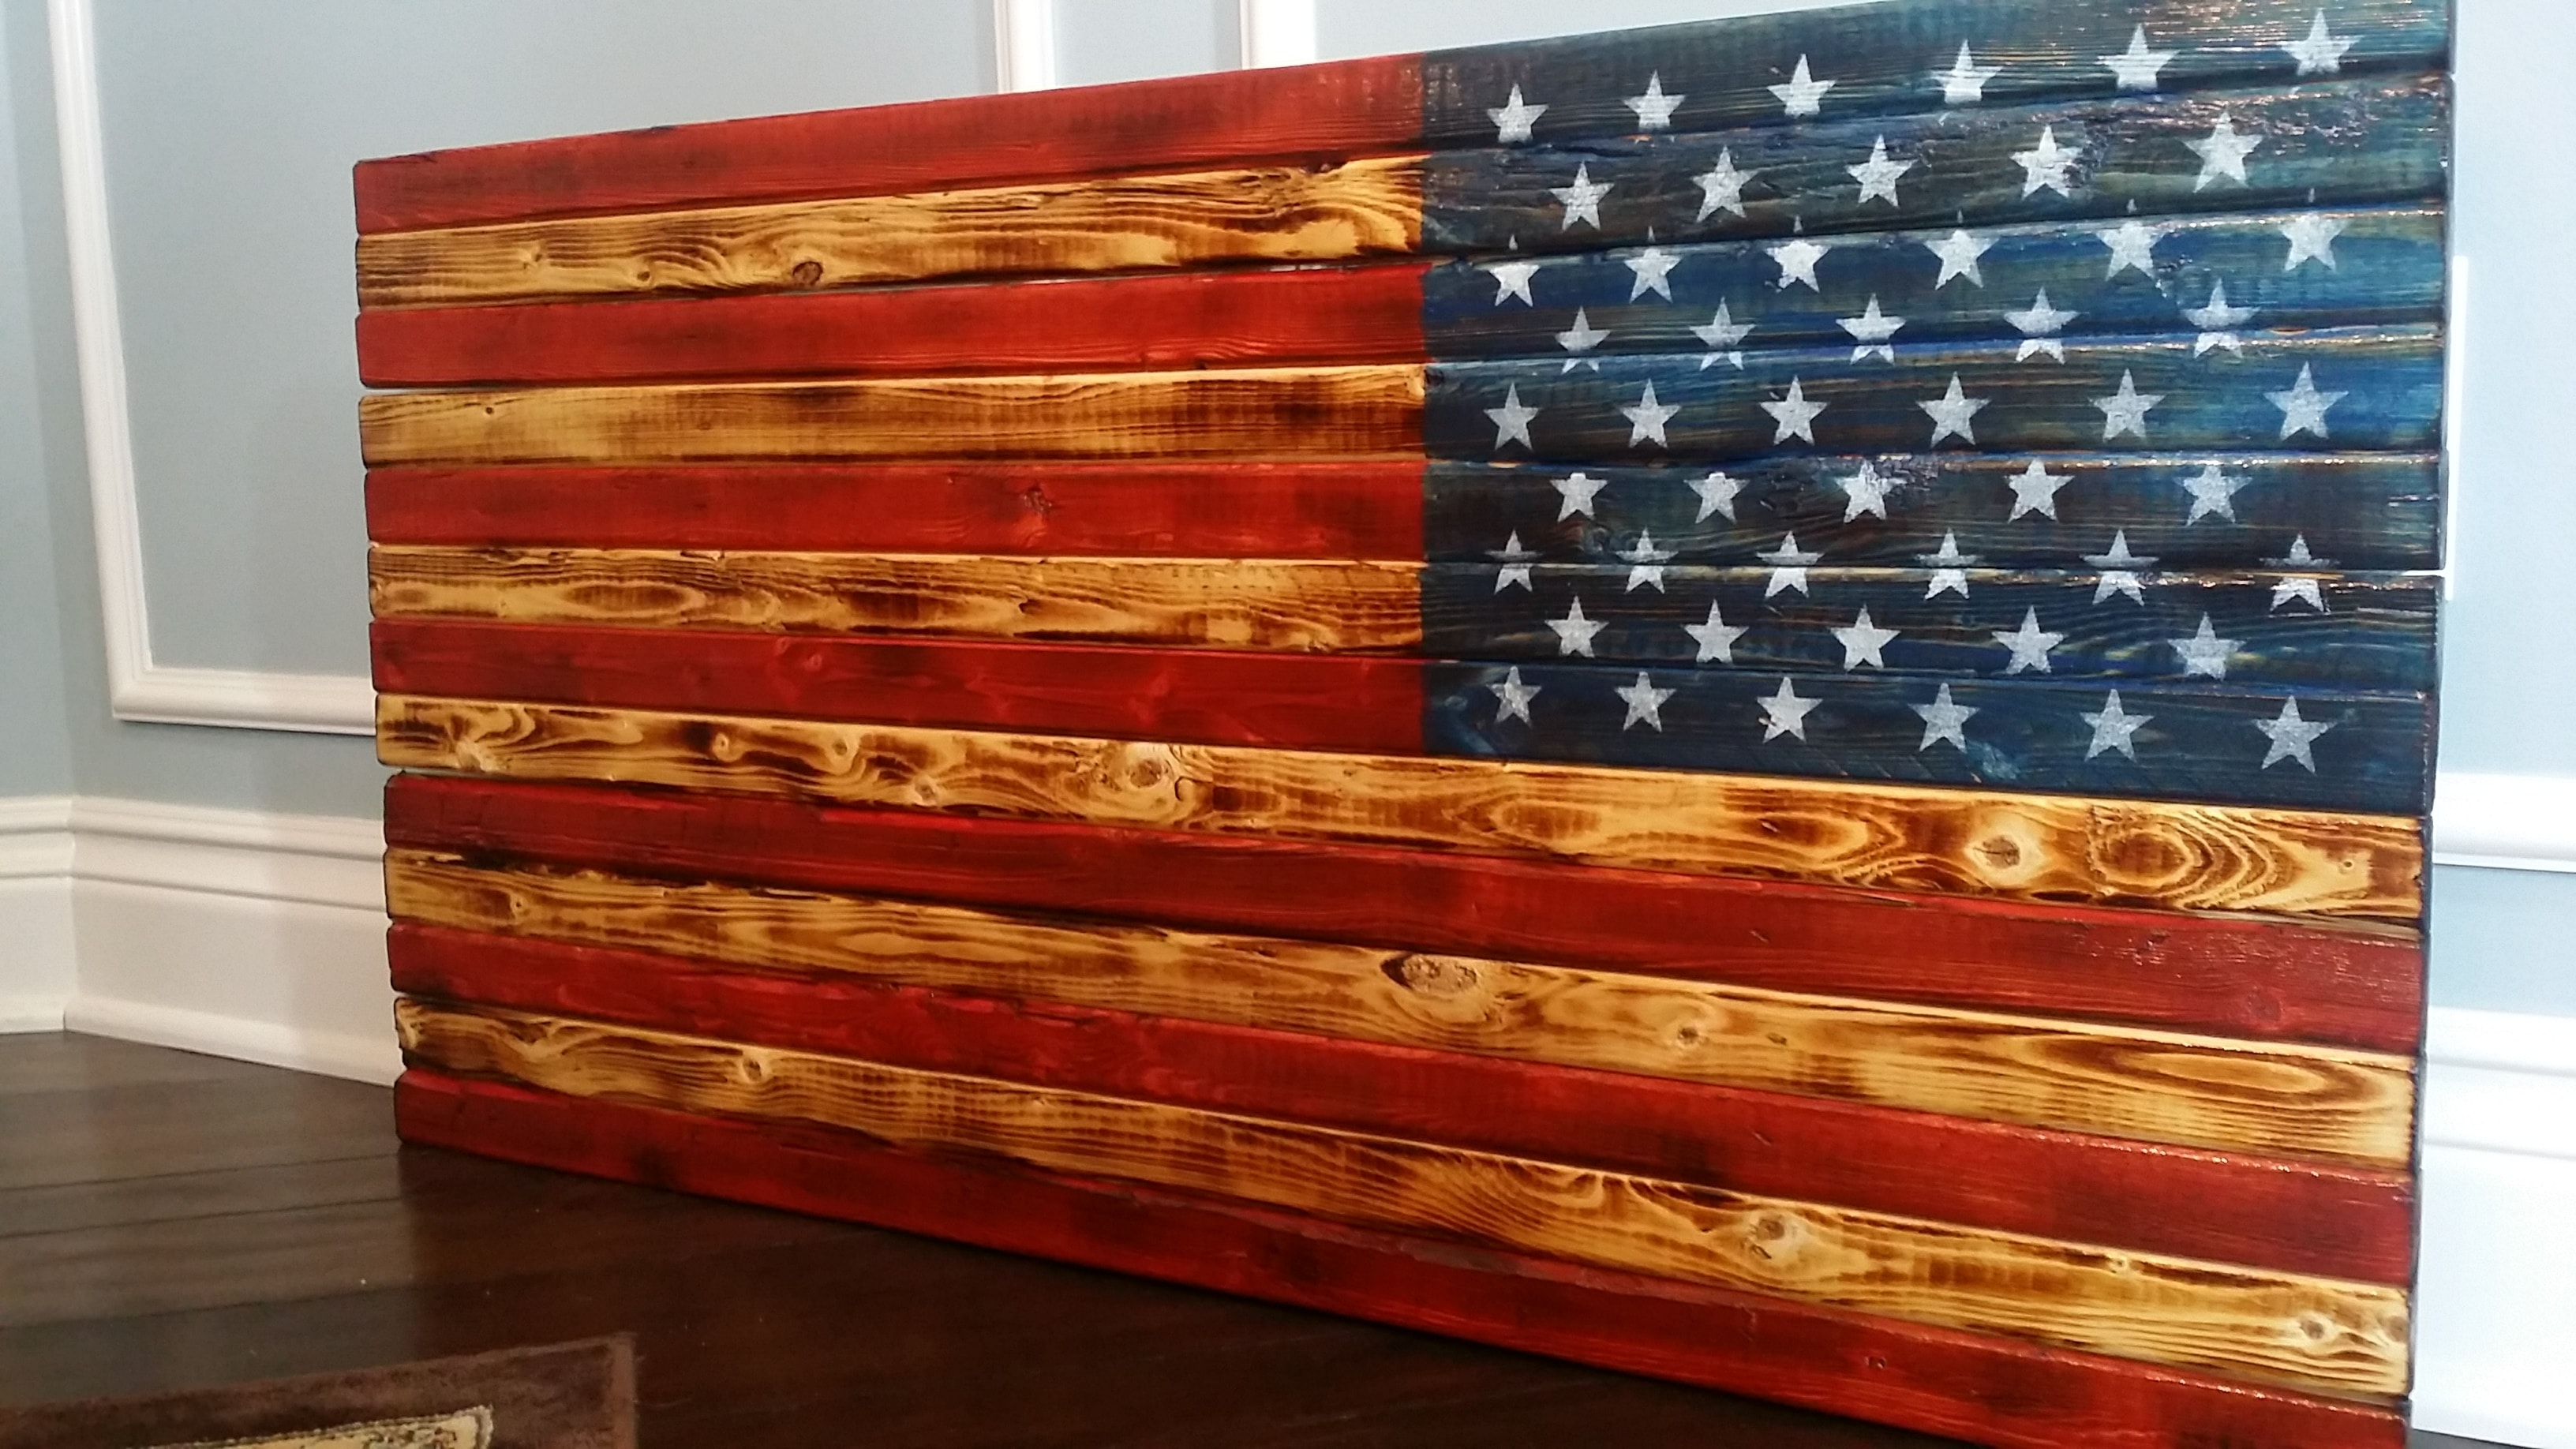 Popular Rustic American Flag Wall Art In Handmade In Usa, Vintage, Rustic And Distressed Wooden U.s (View 9 of 20)